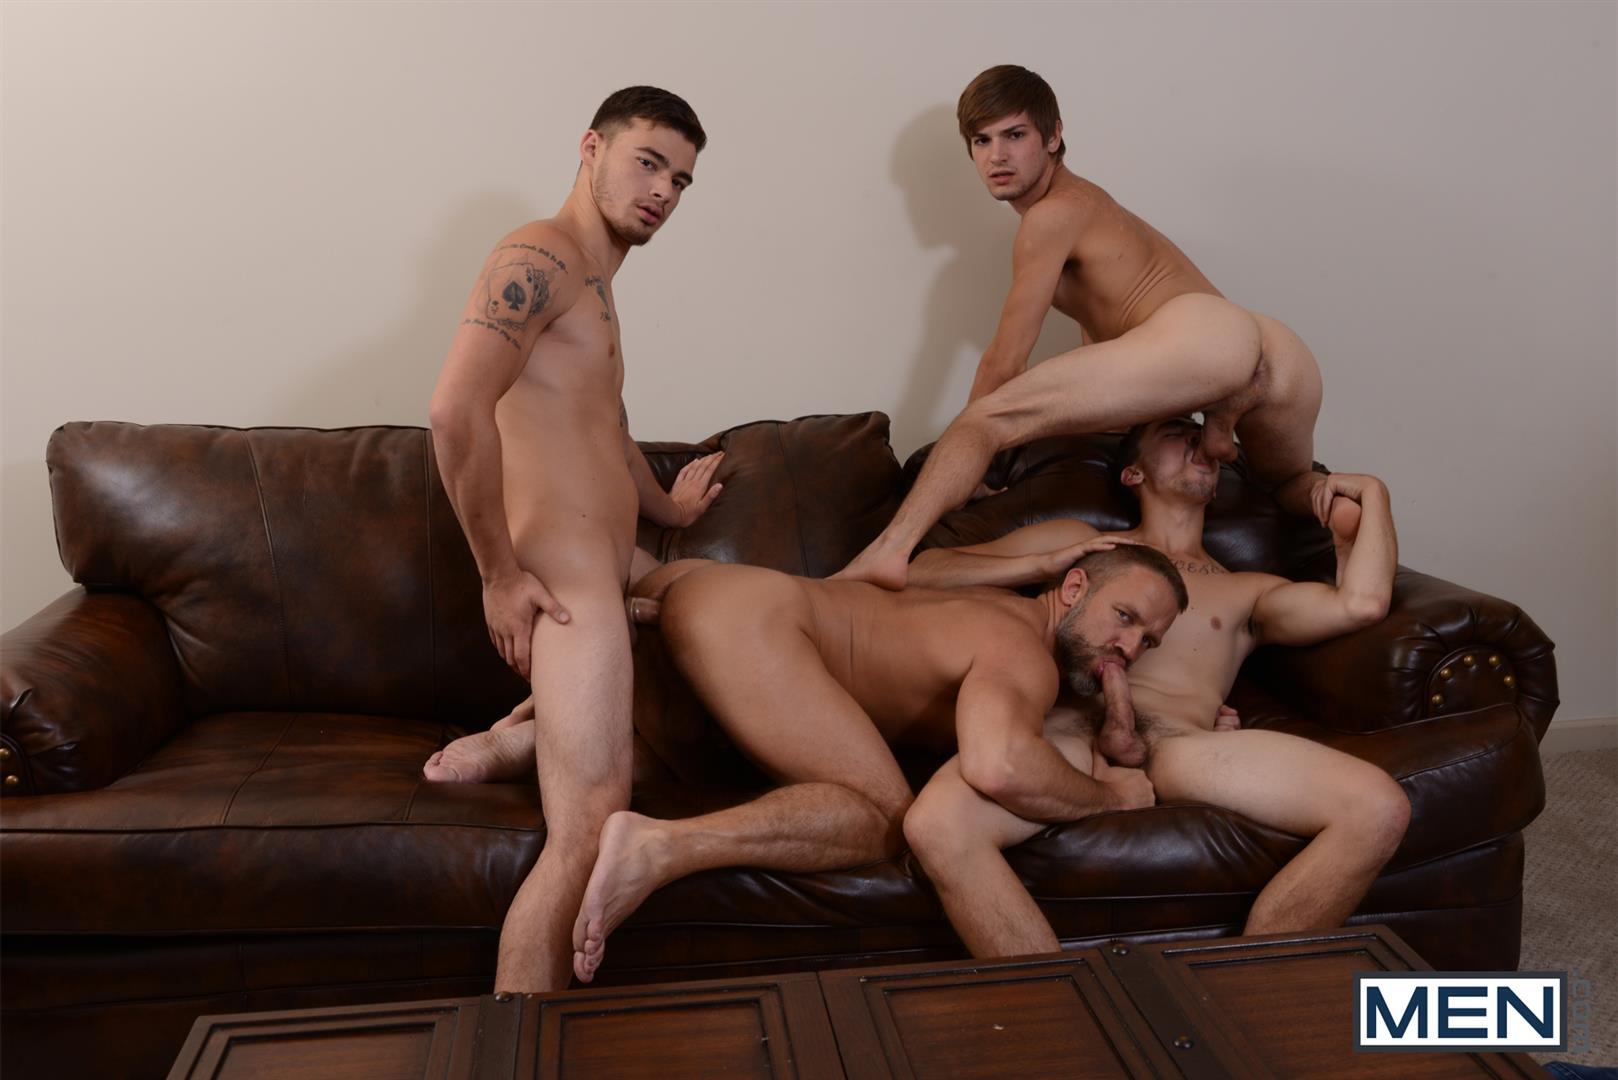 Men Jizz Orgy Asher Hawk and Dirk Caber and Johnny Rapid and Trevor Spade Triple Penetrated In the Ass Amateur Gay Porn 17 Stepfather Dirk Caber Gets TRIPLE Penetrated By His Stepsons